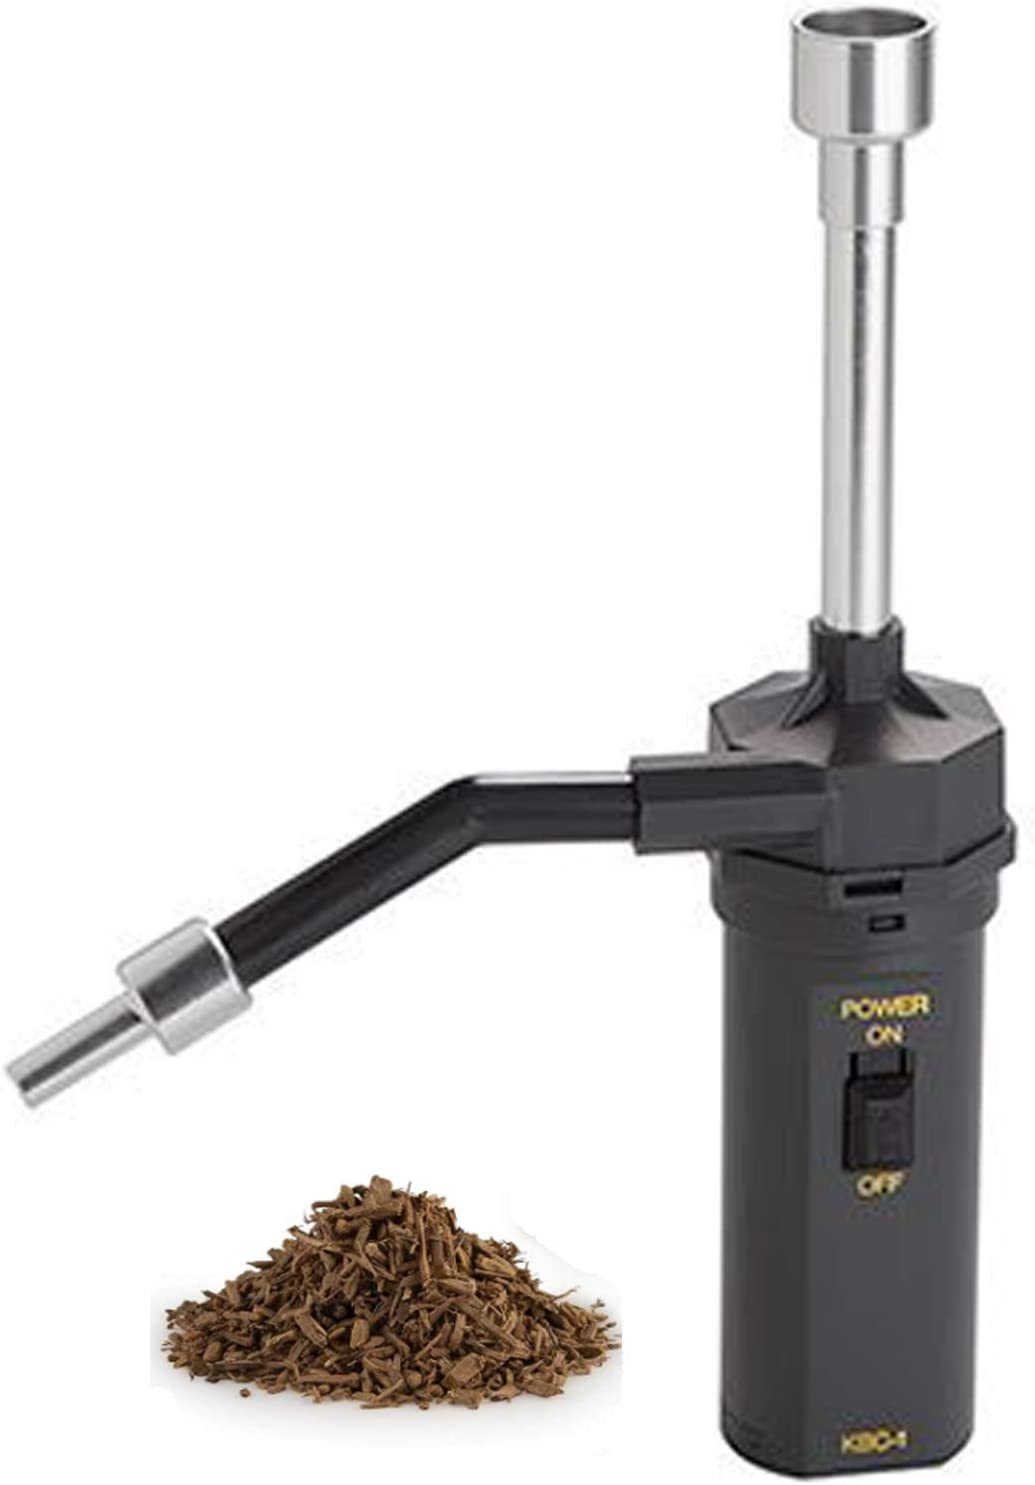 Huanxin Smoking Gun Food Smoker, Cocktail Drink Smoker,Food Smoker, Wood Chips Included